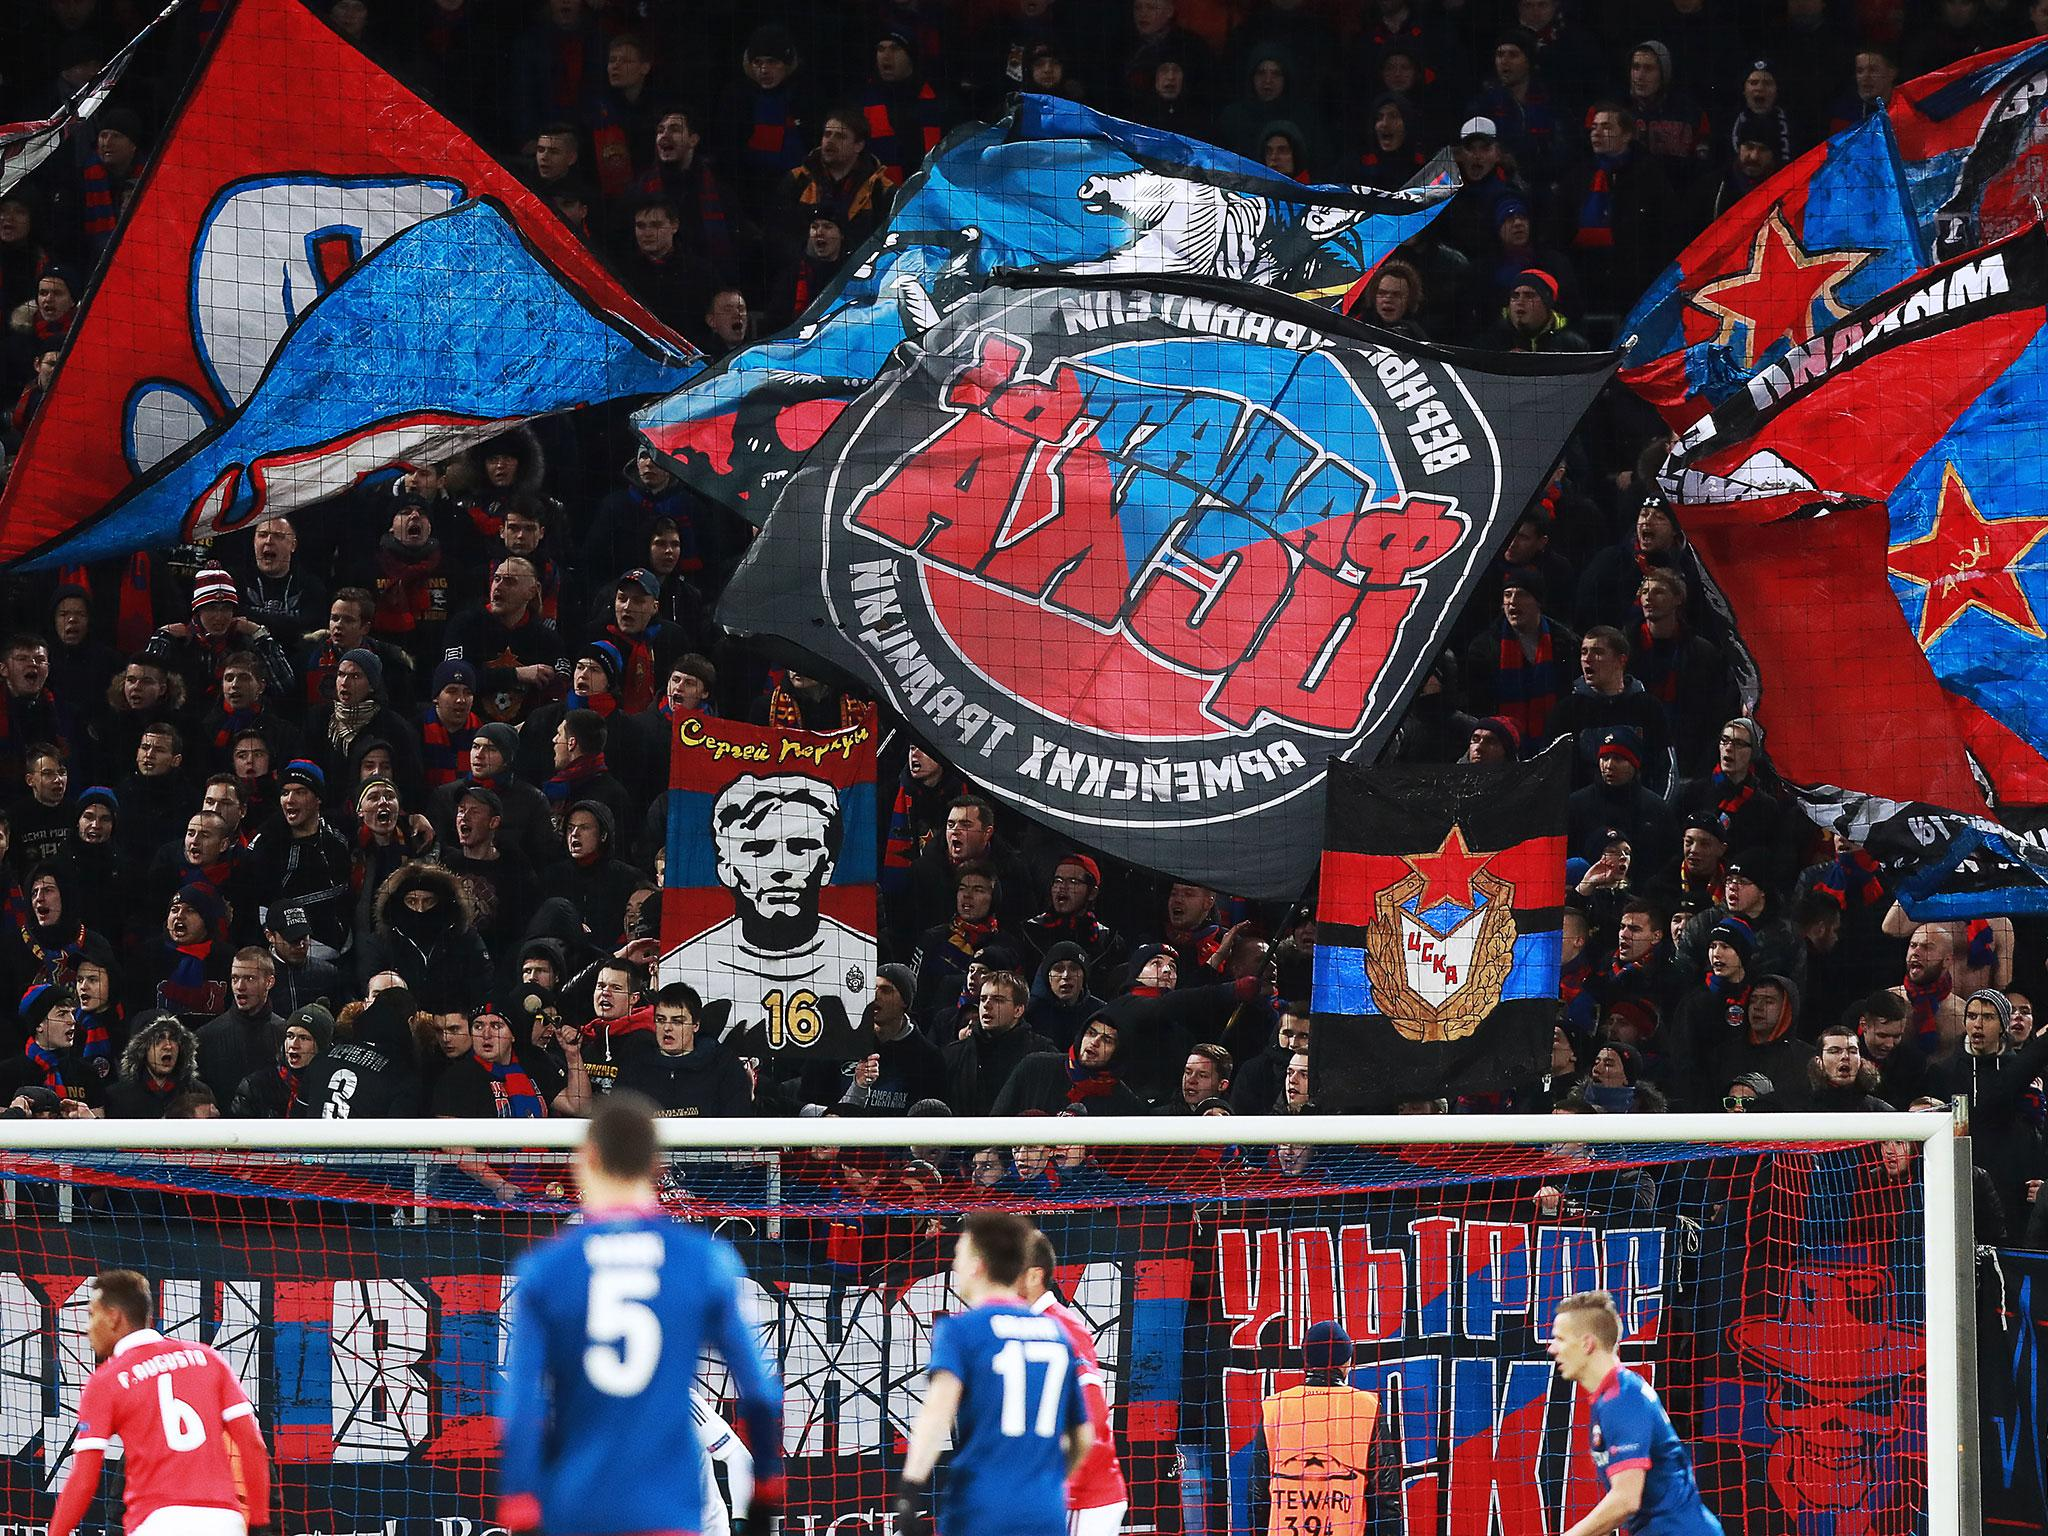 The shadow of Russian football's past hangs heavy over CSKA Moscow